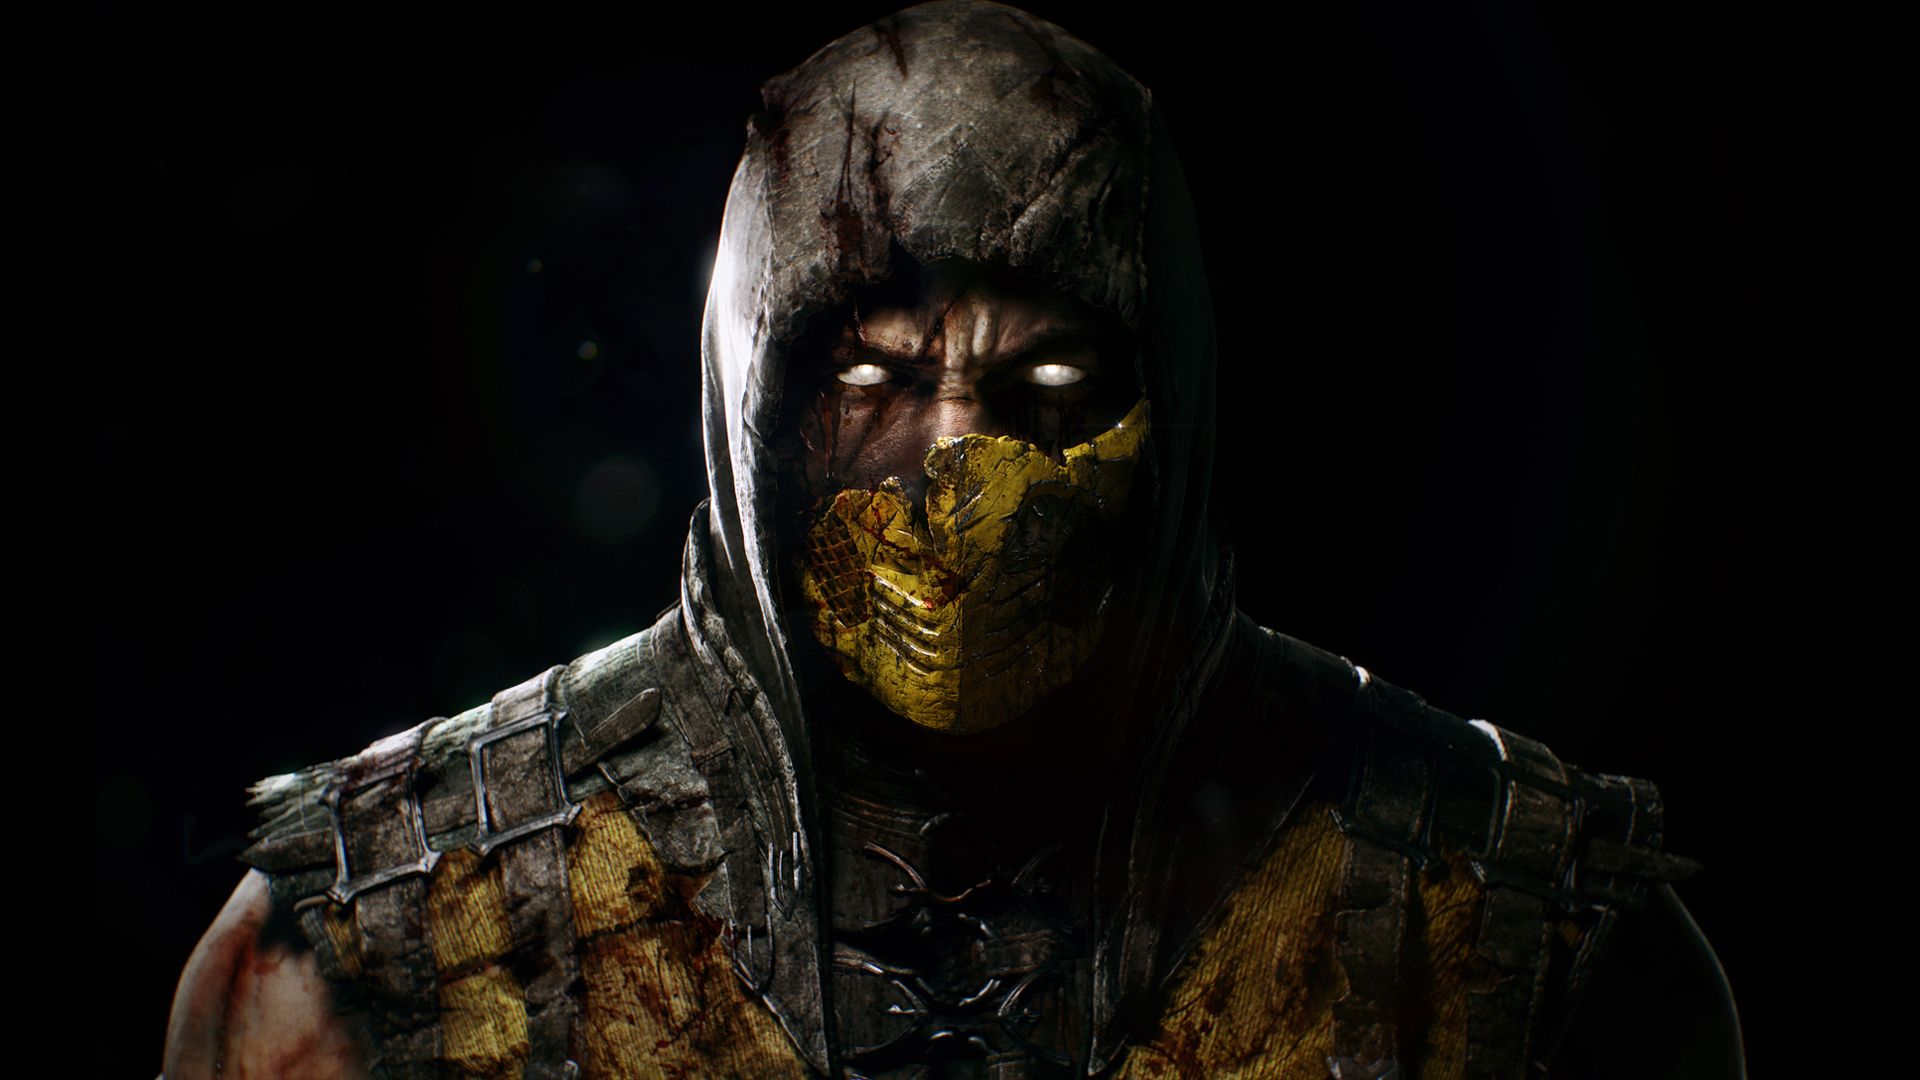 Scorpion Mortal Kombat X Wallpaper HD http//imashon